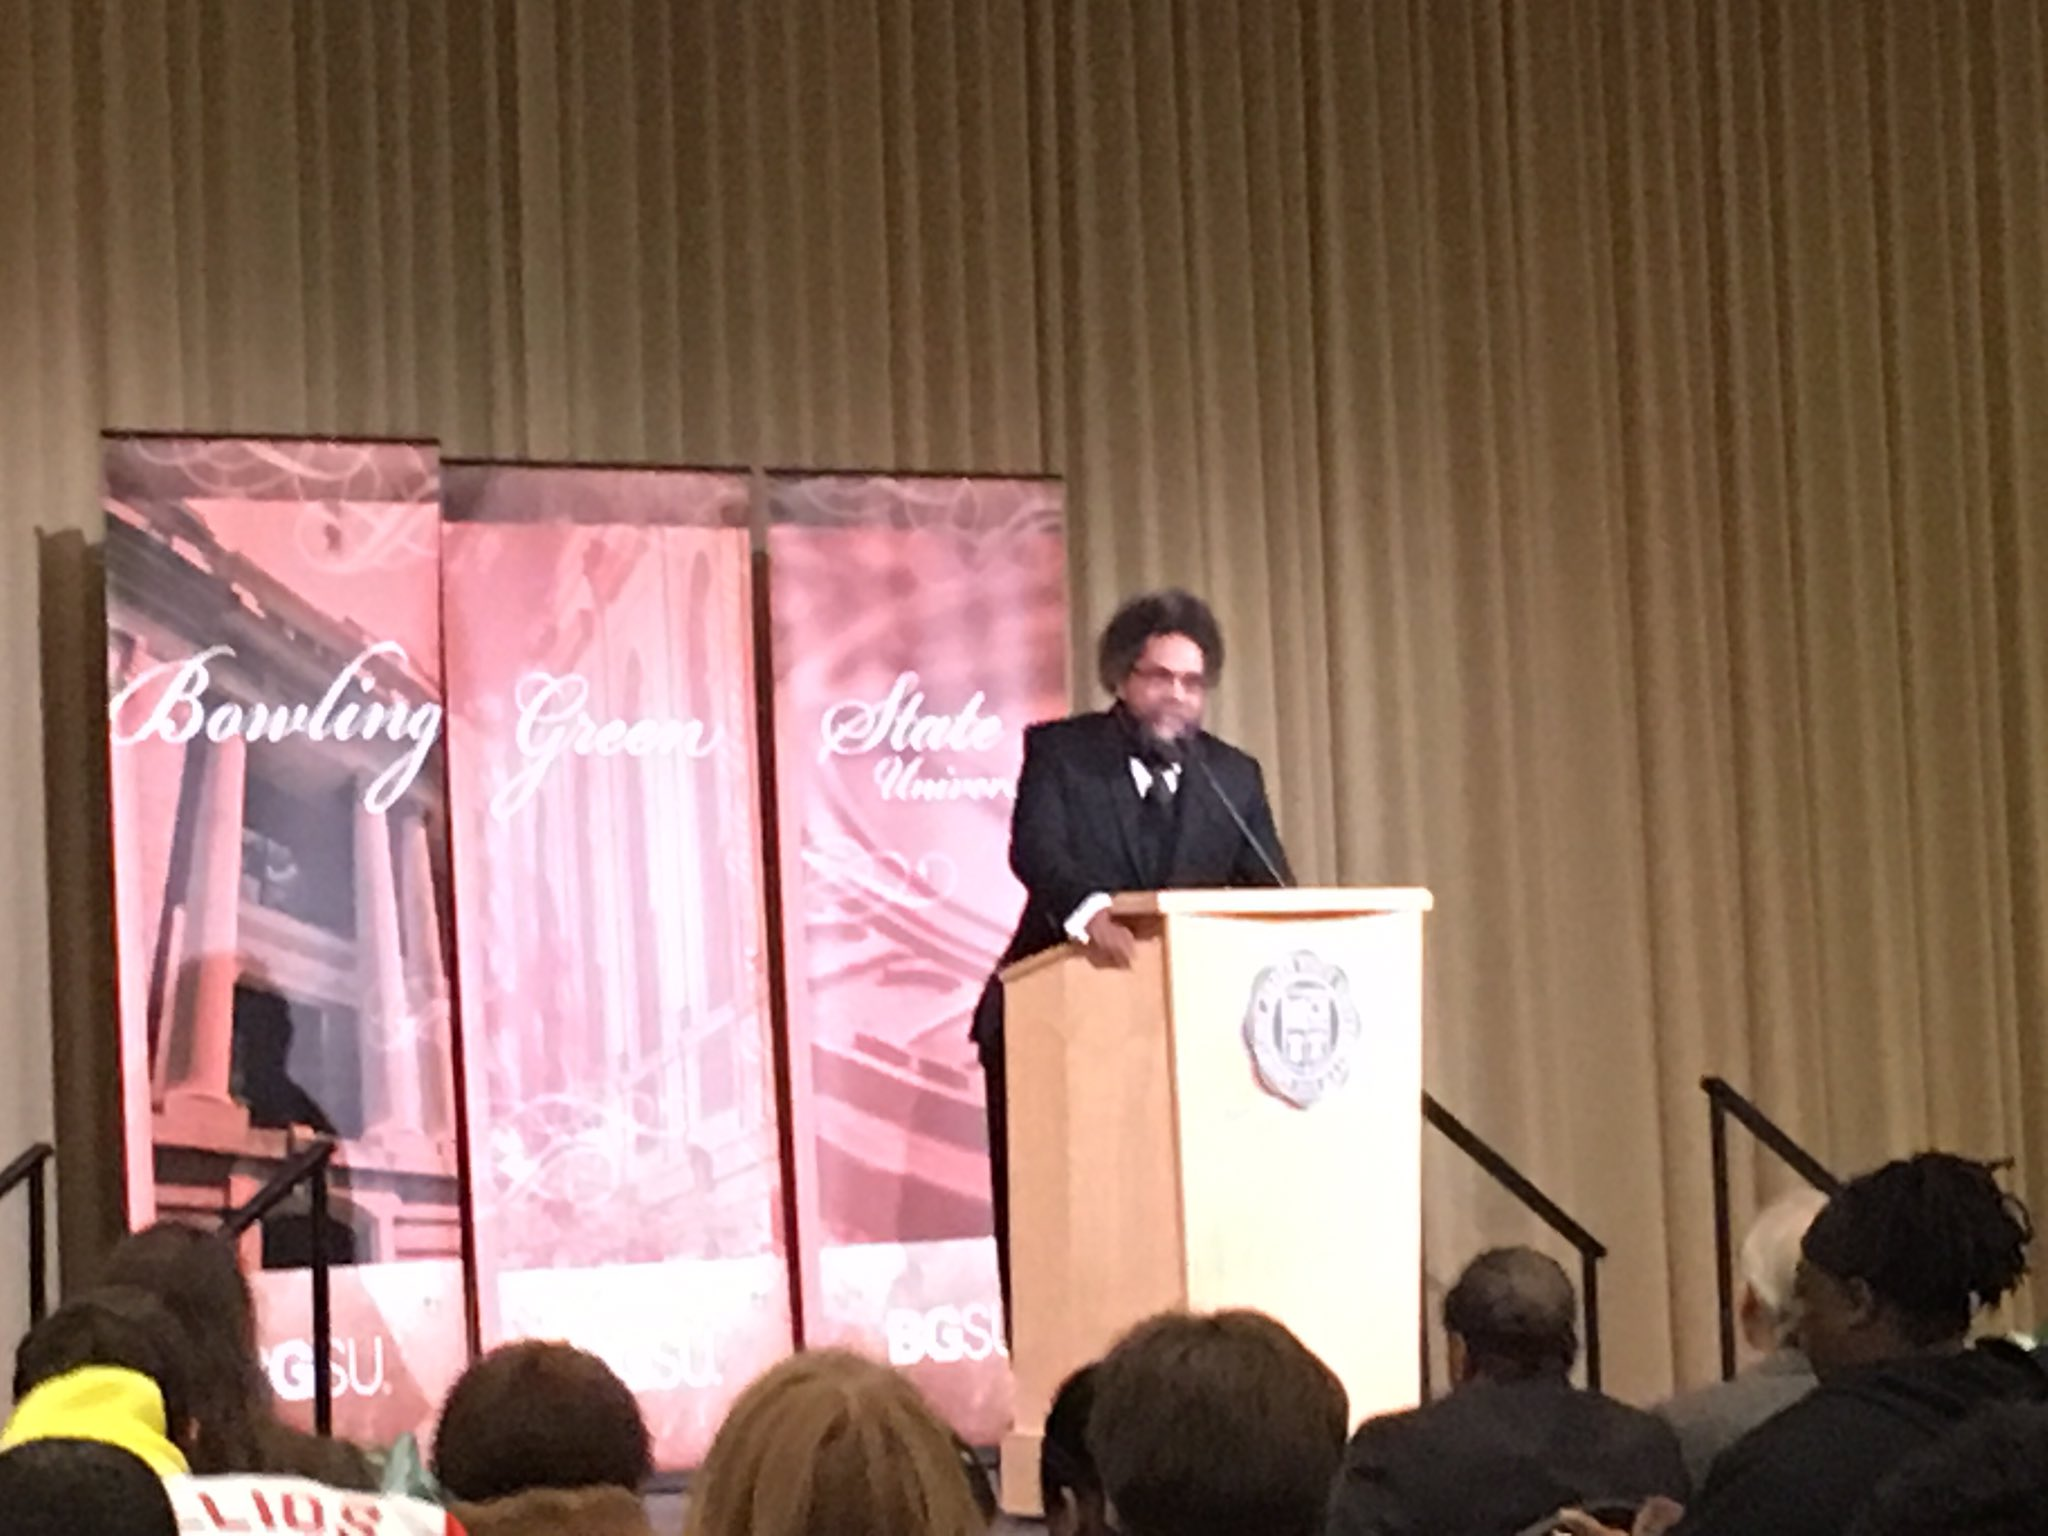 @CornelWest speaking at @bgsu: every tradition needs to be criticized https://t.co/3pXuH5PmCY